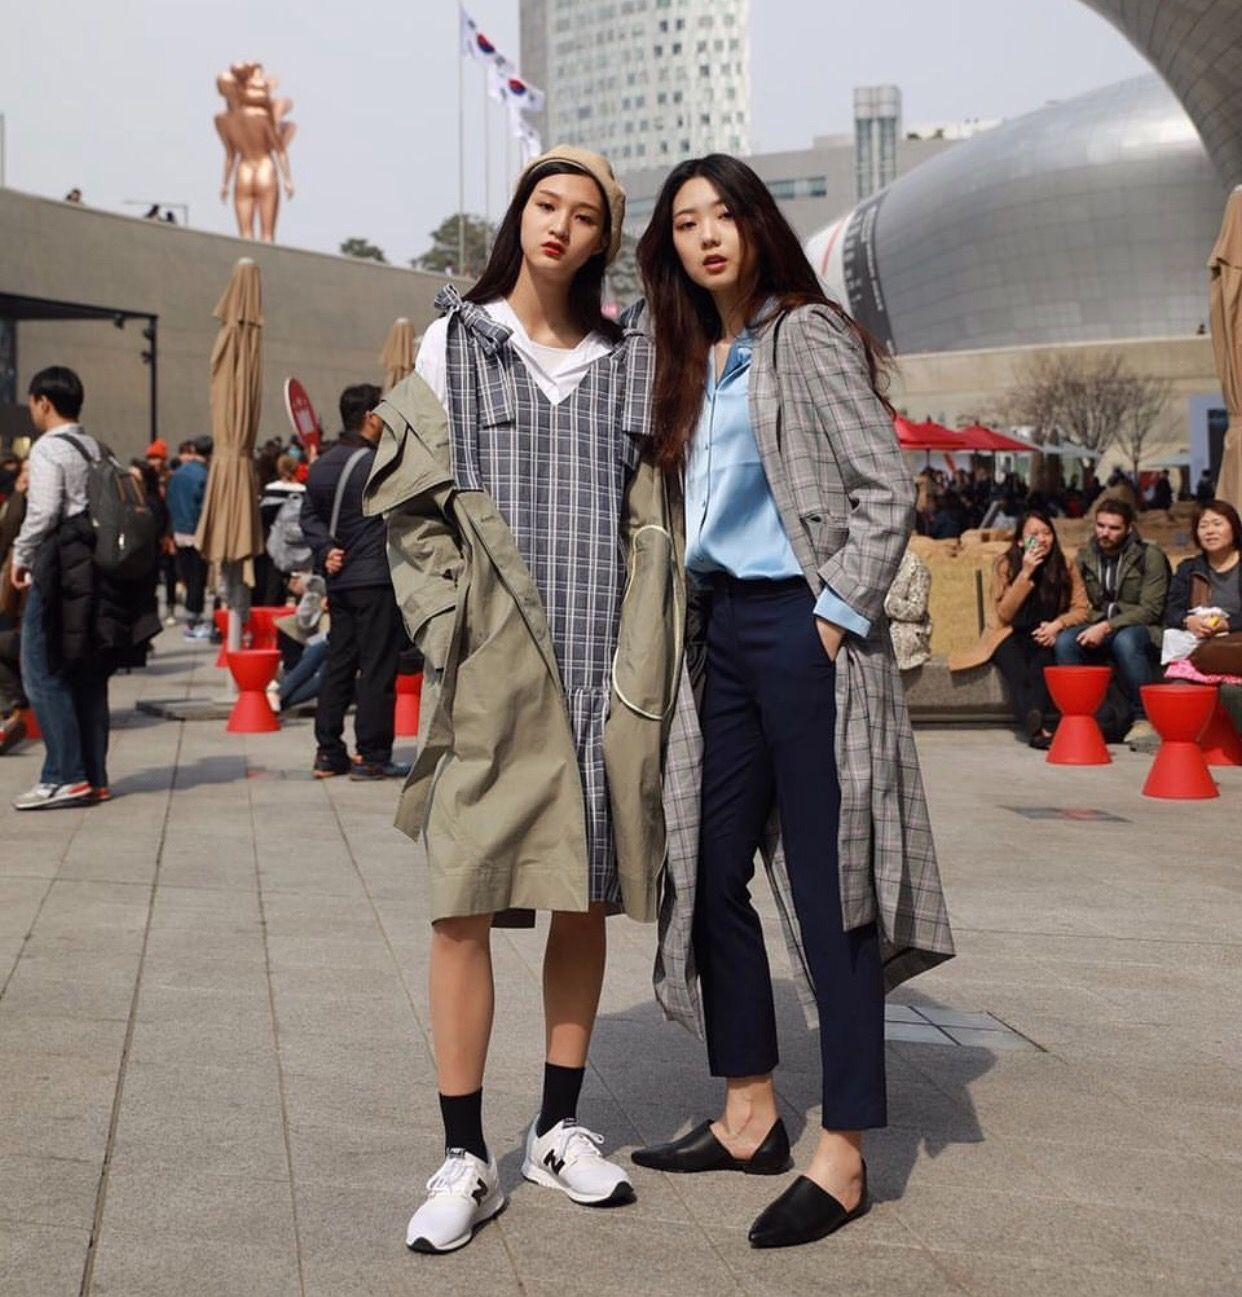 Seoul Fashion Week 2017 Women S Seoul Fashion In 2019 Seoul